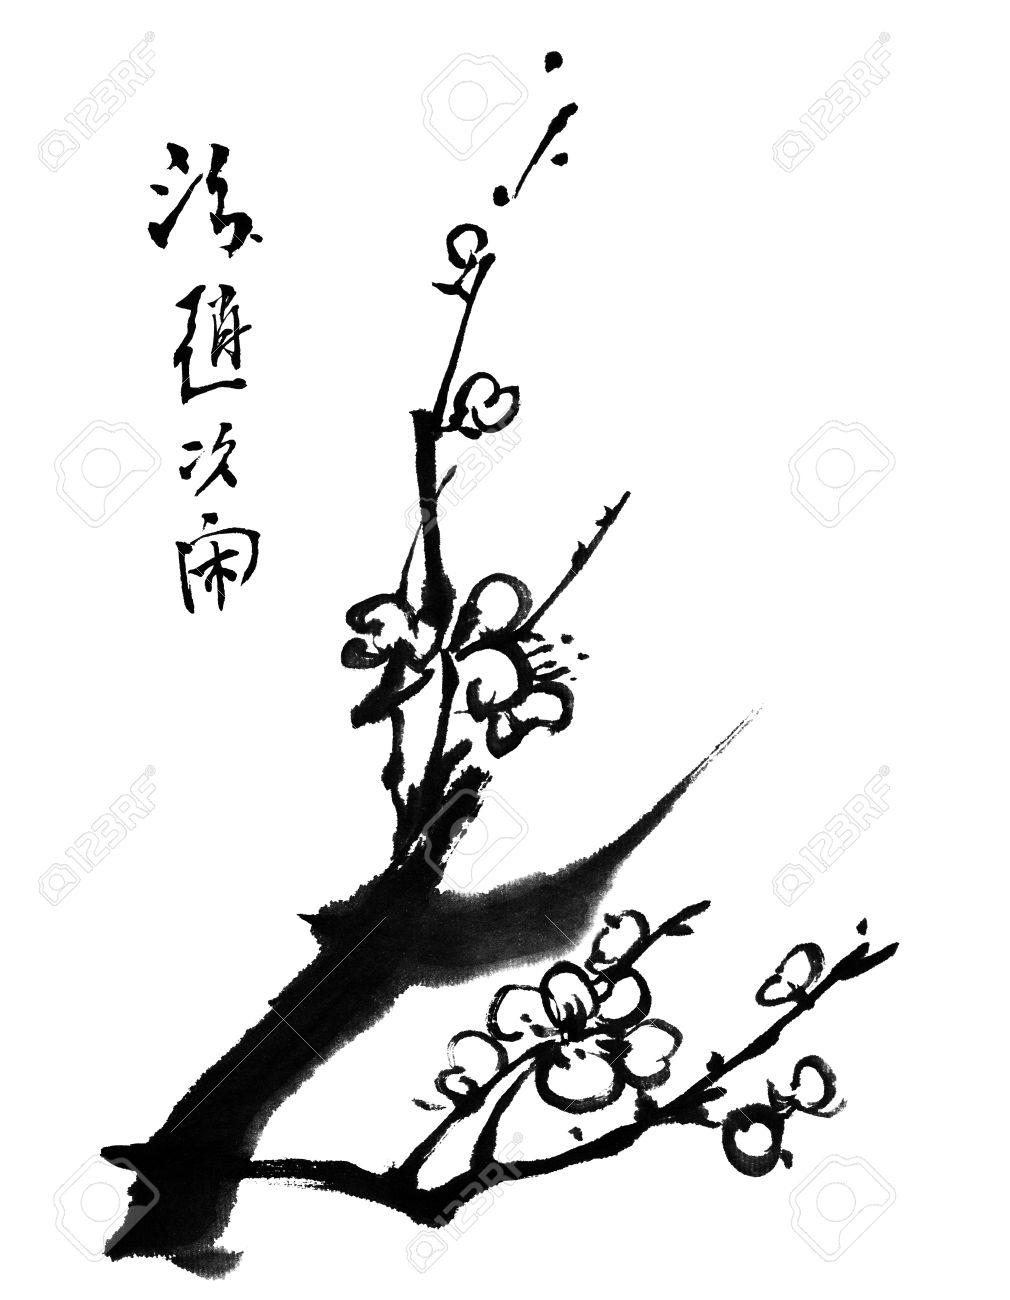 Chinese Painting Of Flowers Plum Blossom On White Background